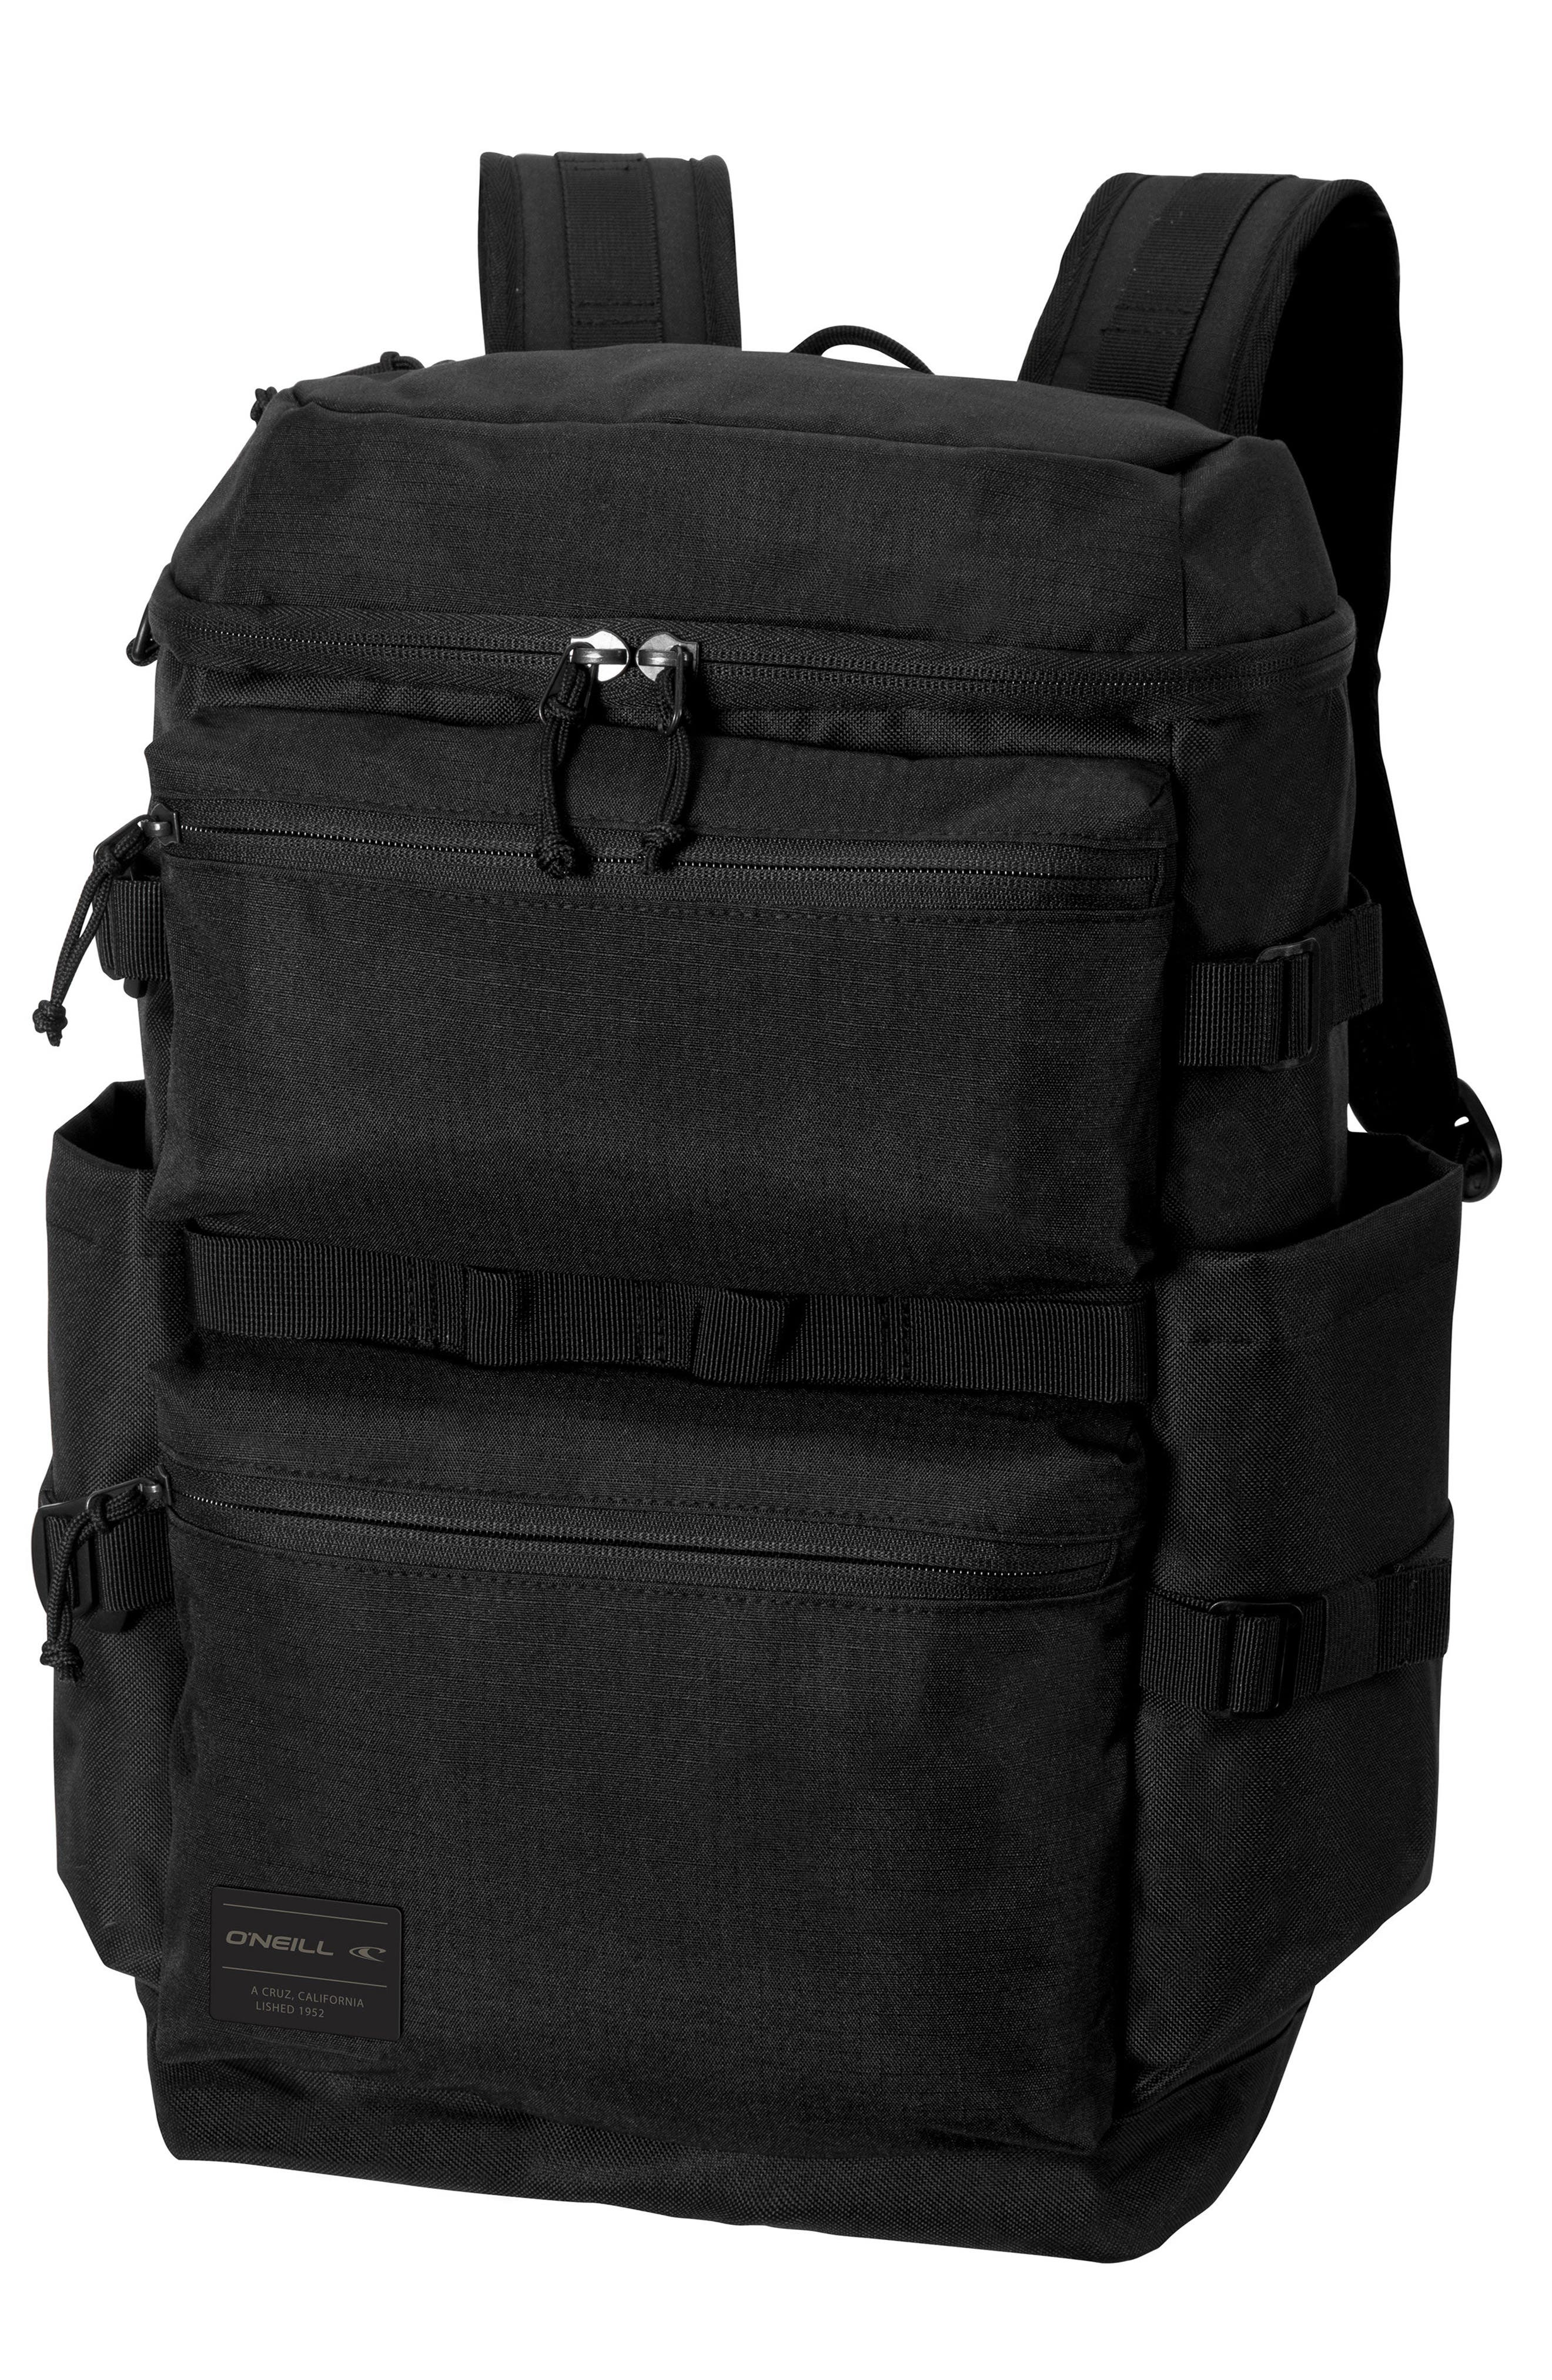 Hammond Backpack,                         Main,                         color, 001